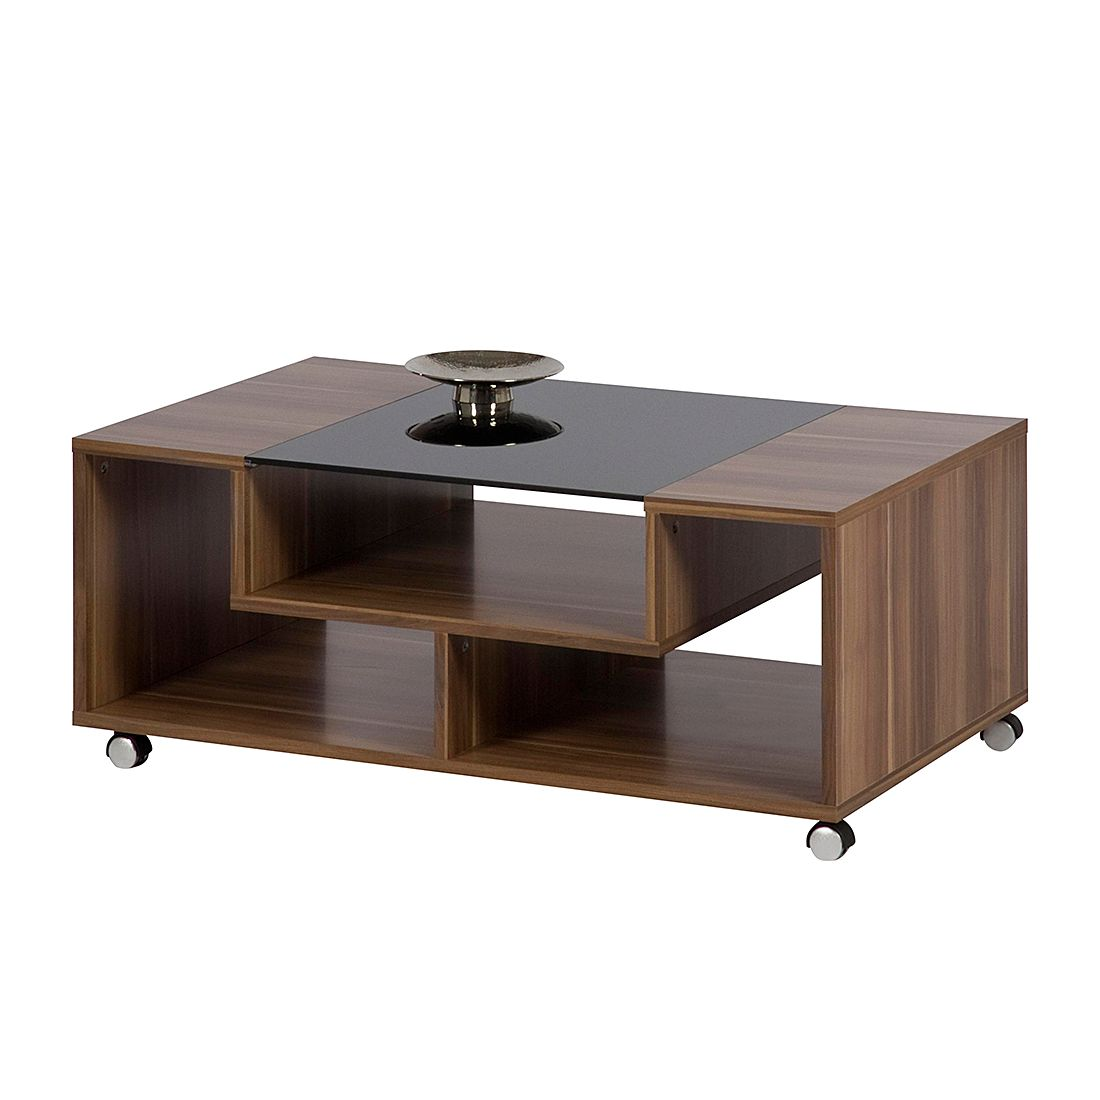 Table basse Franky - Imitation prunier / Noir, mooved